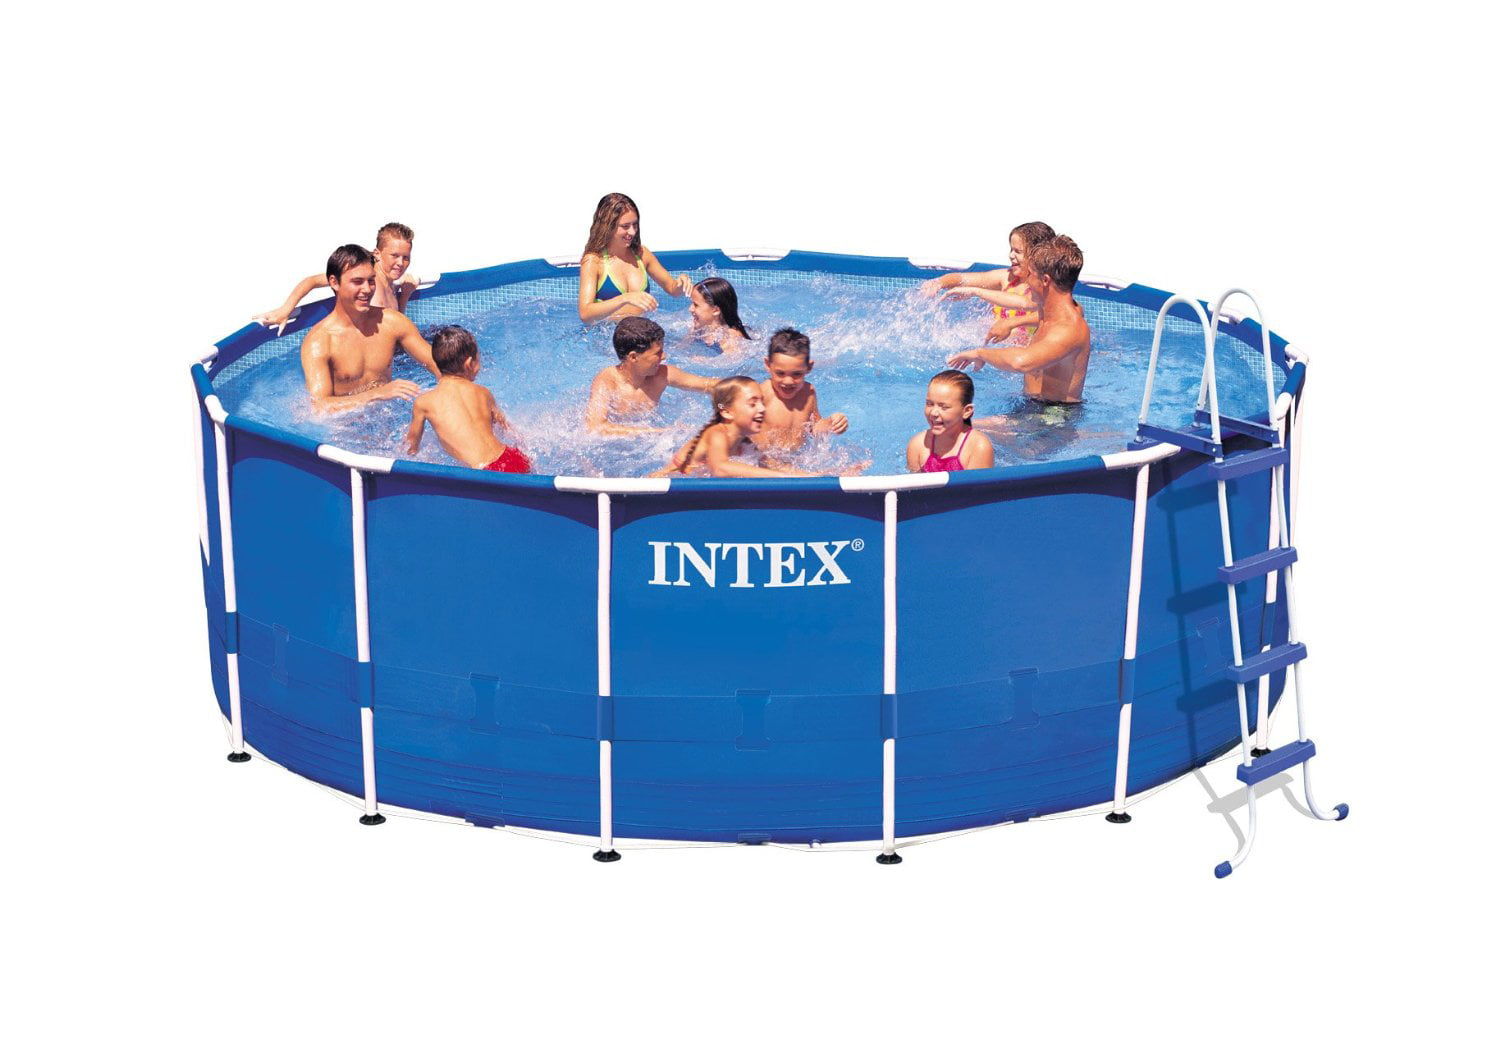 Intex 15 X 48 Metal Frame Above Ground Swimming Pool With Filter Pump Walmart Com Walmart Com